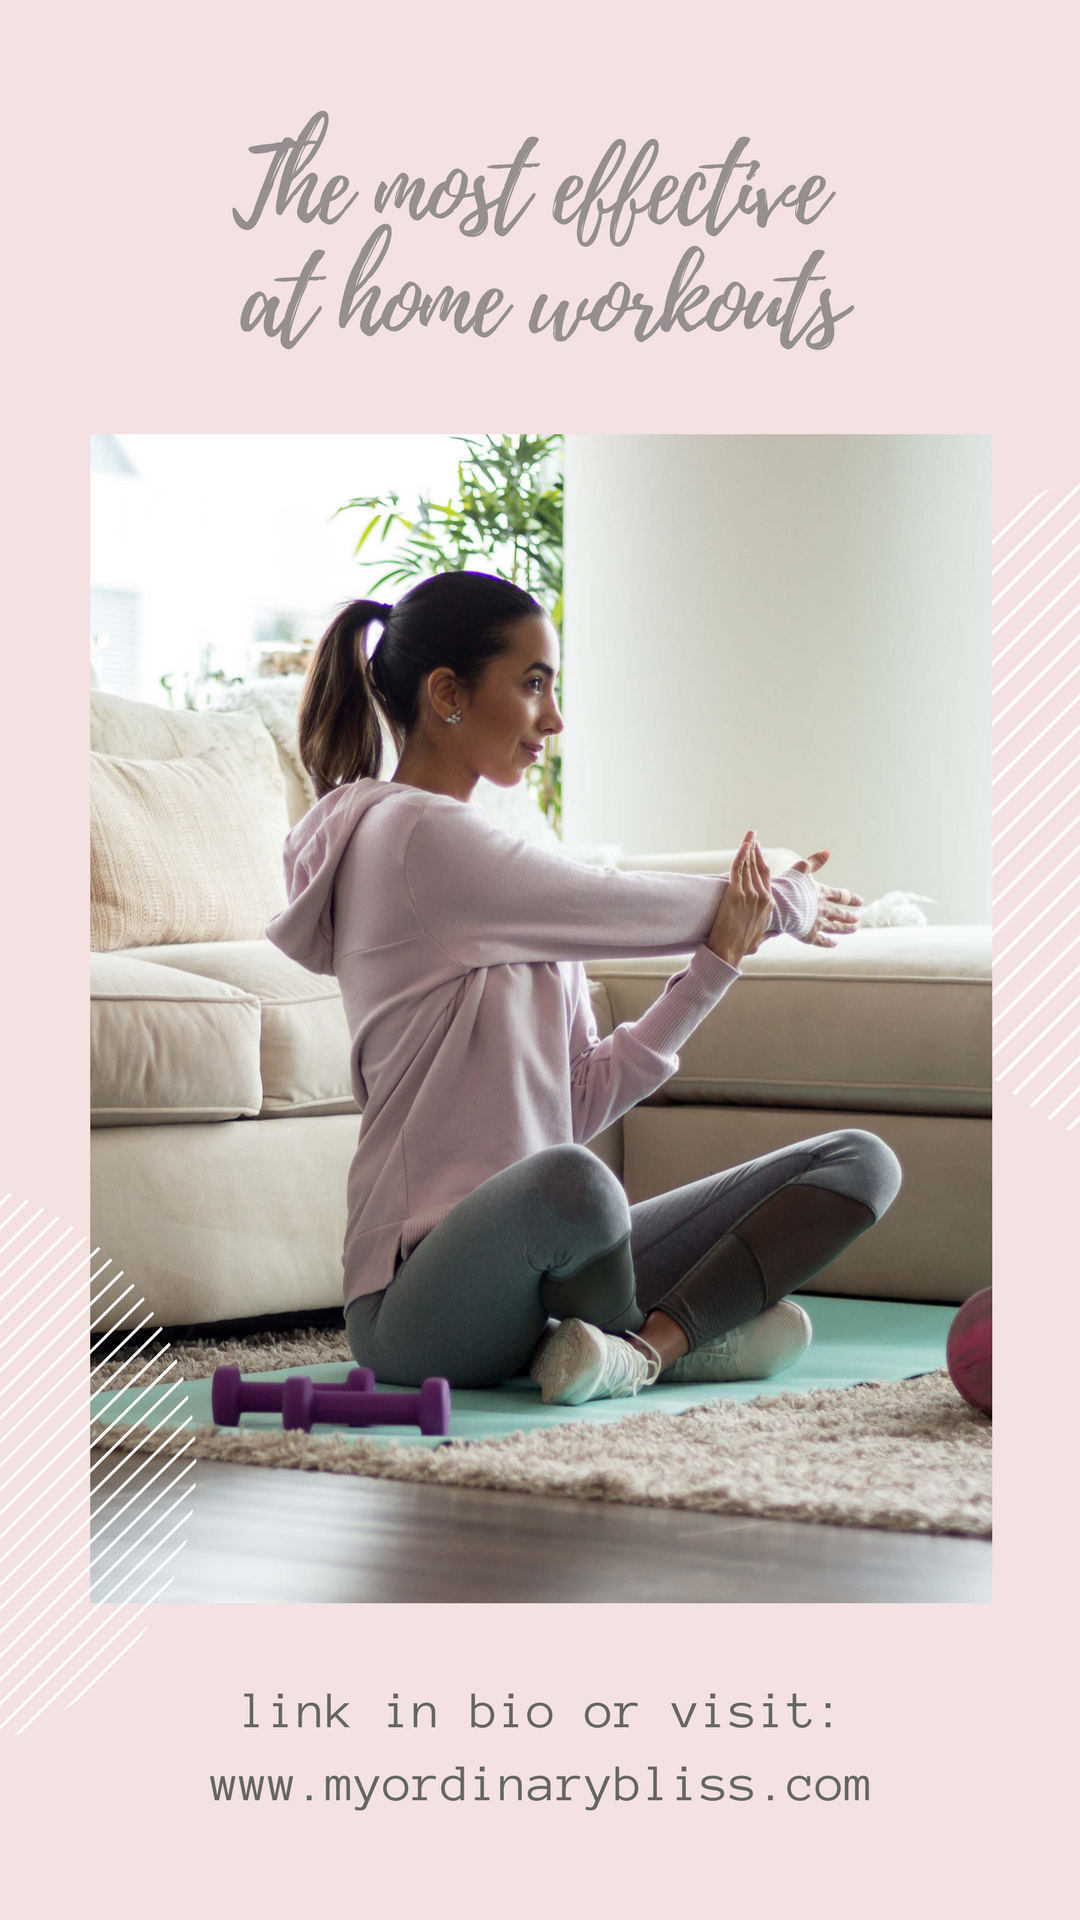 The most effective at home workouts